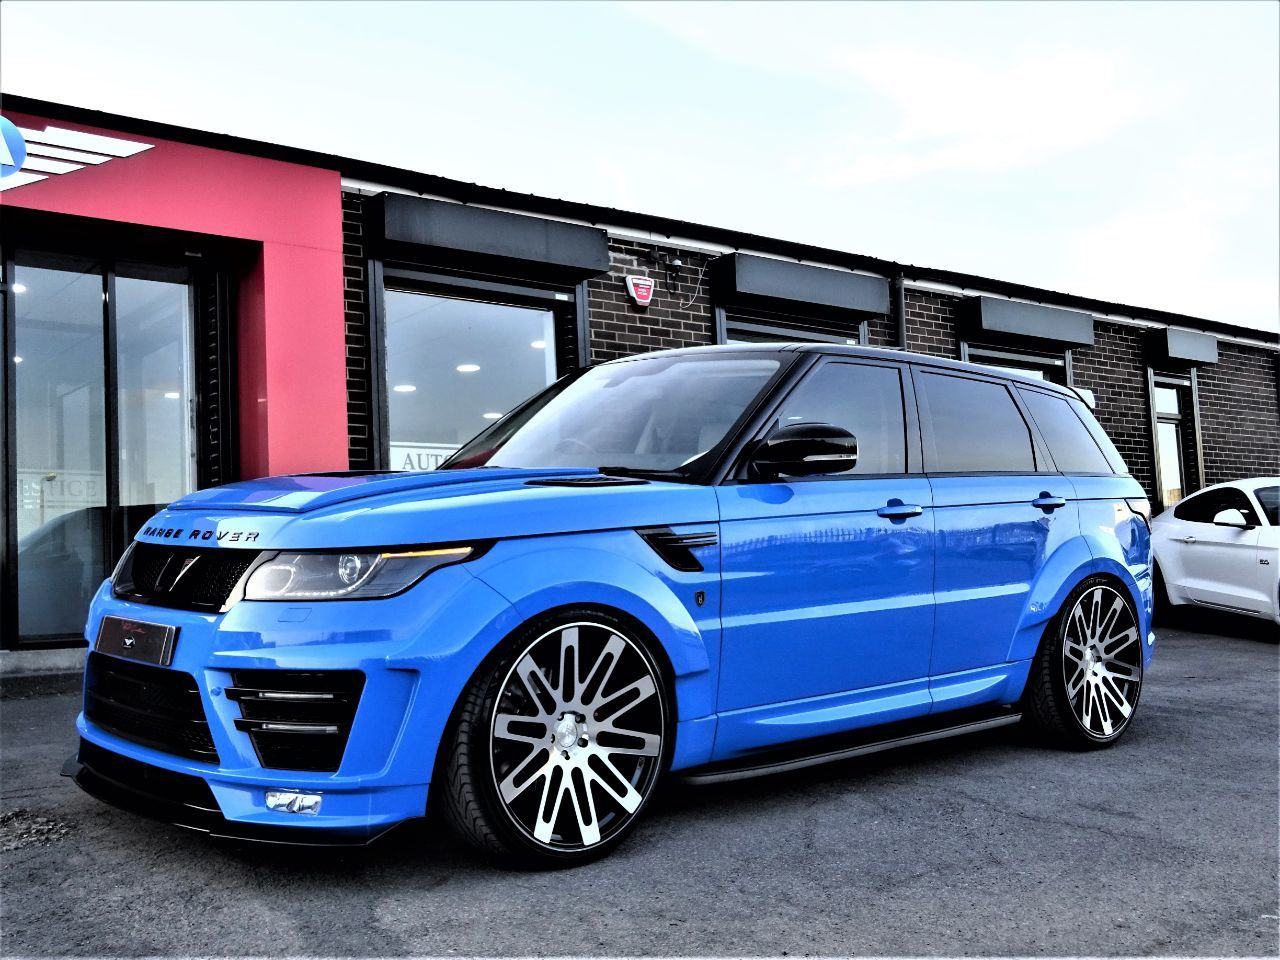 Land Rover Range Rover Sport 3.0 HSE SDV6 BI-TURBO VZR-600 EDITION WIDE BODY LATEST VOODOO BLUE WITH EXTRAS Four Wheel Drive Diesel Voodoo BlueLand Rover Range Rover Sport 3.0 HSE SDV6 BI-TURBO VZR-600 EDITION WIDE BODY LATEST VOODOO BLUE WITH EXTRAS Four Wheel Drive Diesel Voodoo Blue at Autoprestige Bradford